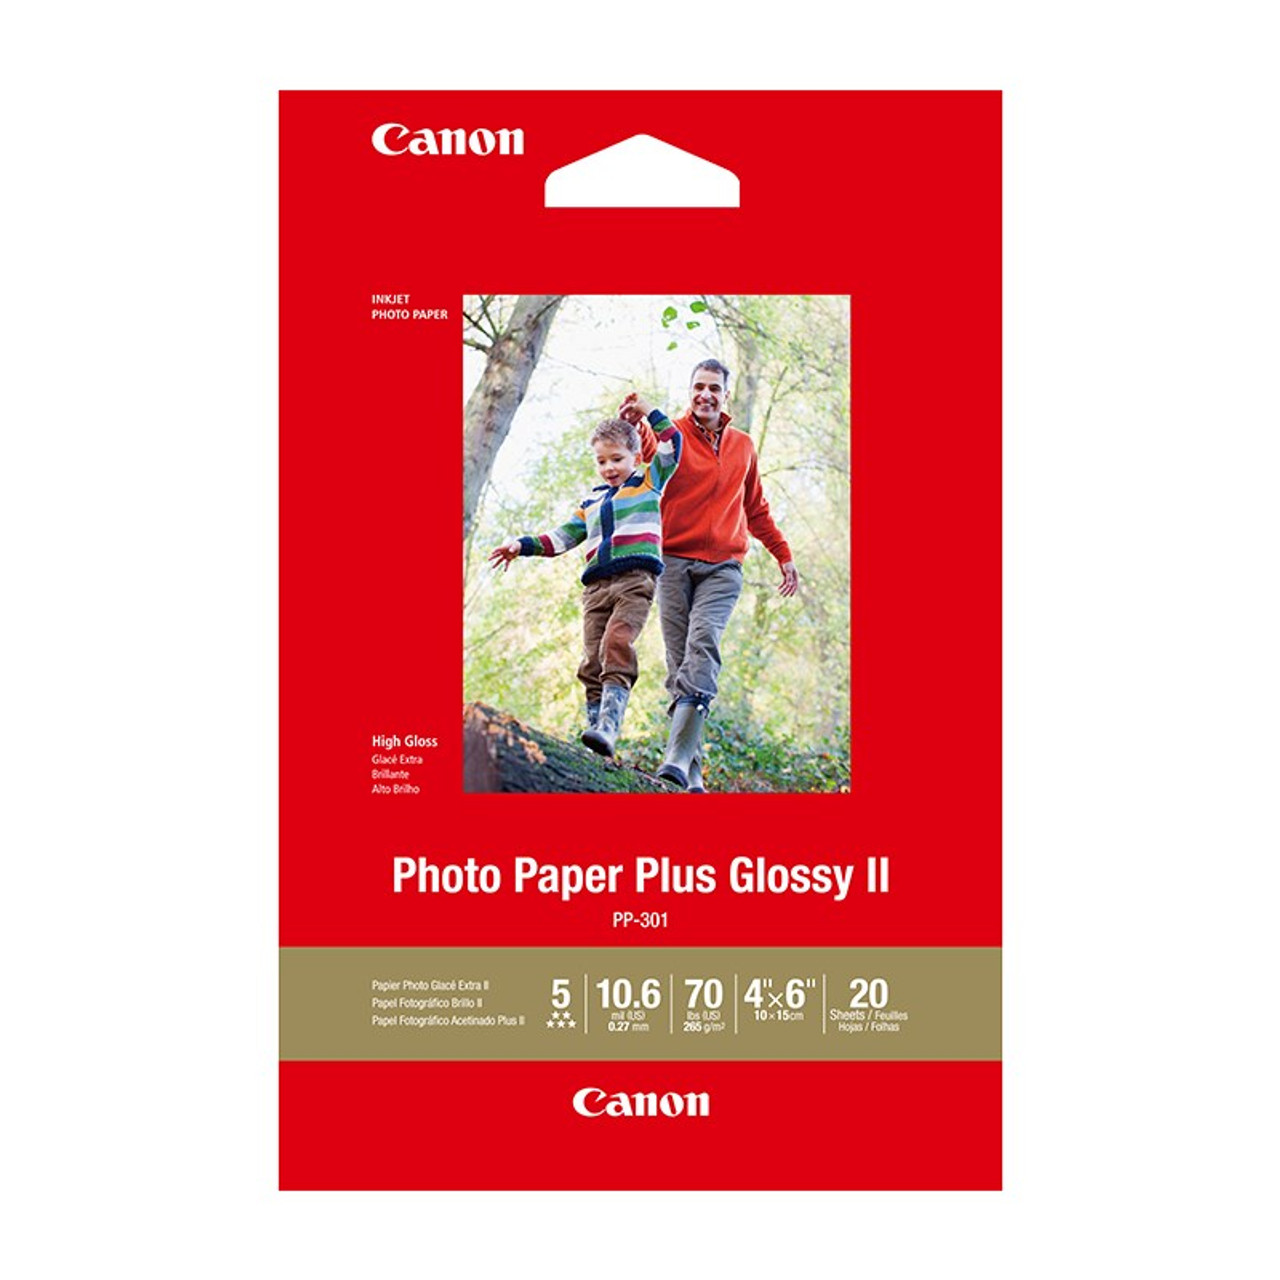 Image for Canon Photo Paper Plus Glossy II 4inx6in - 20 Sheets CX Computer Superstore